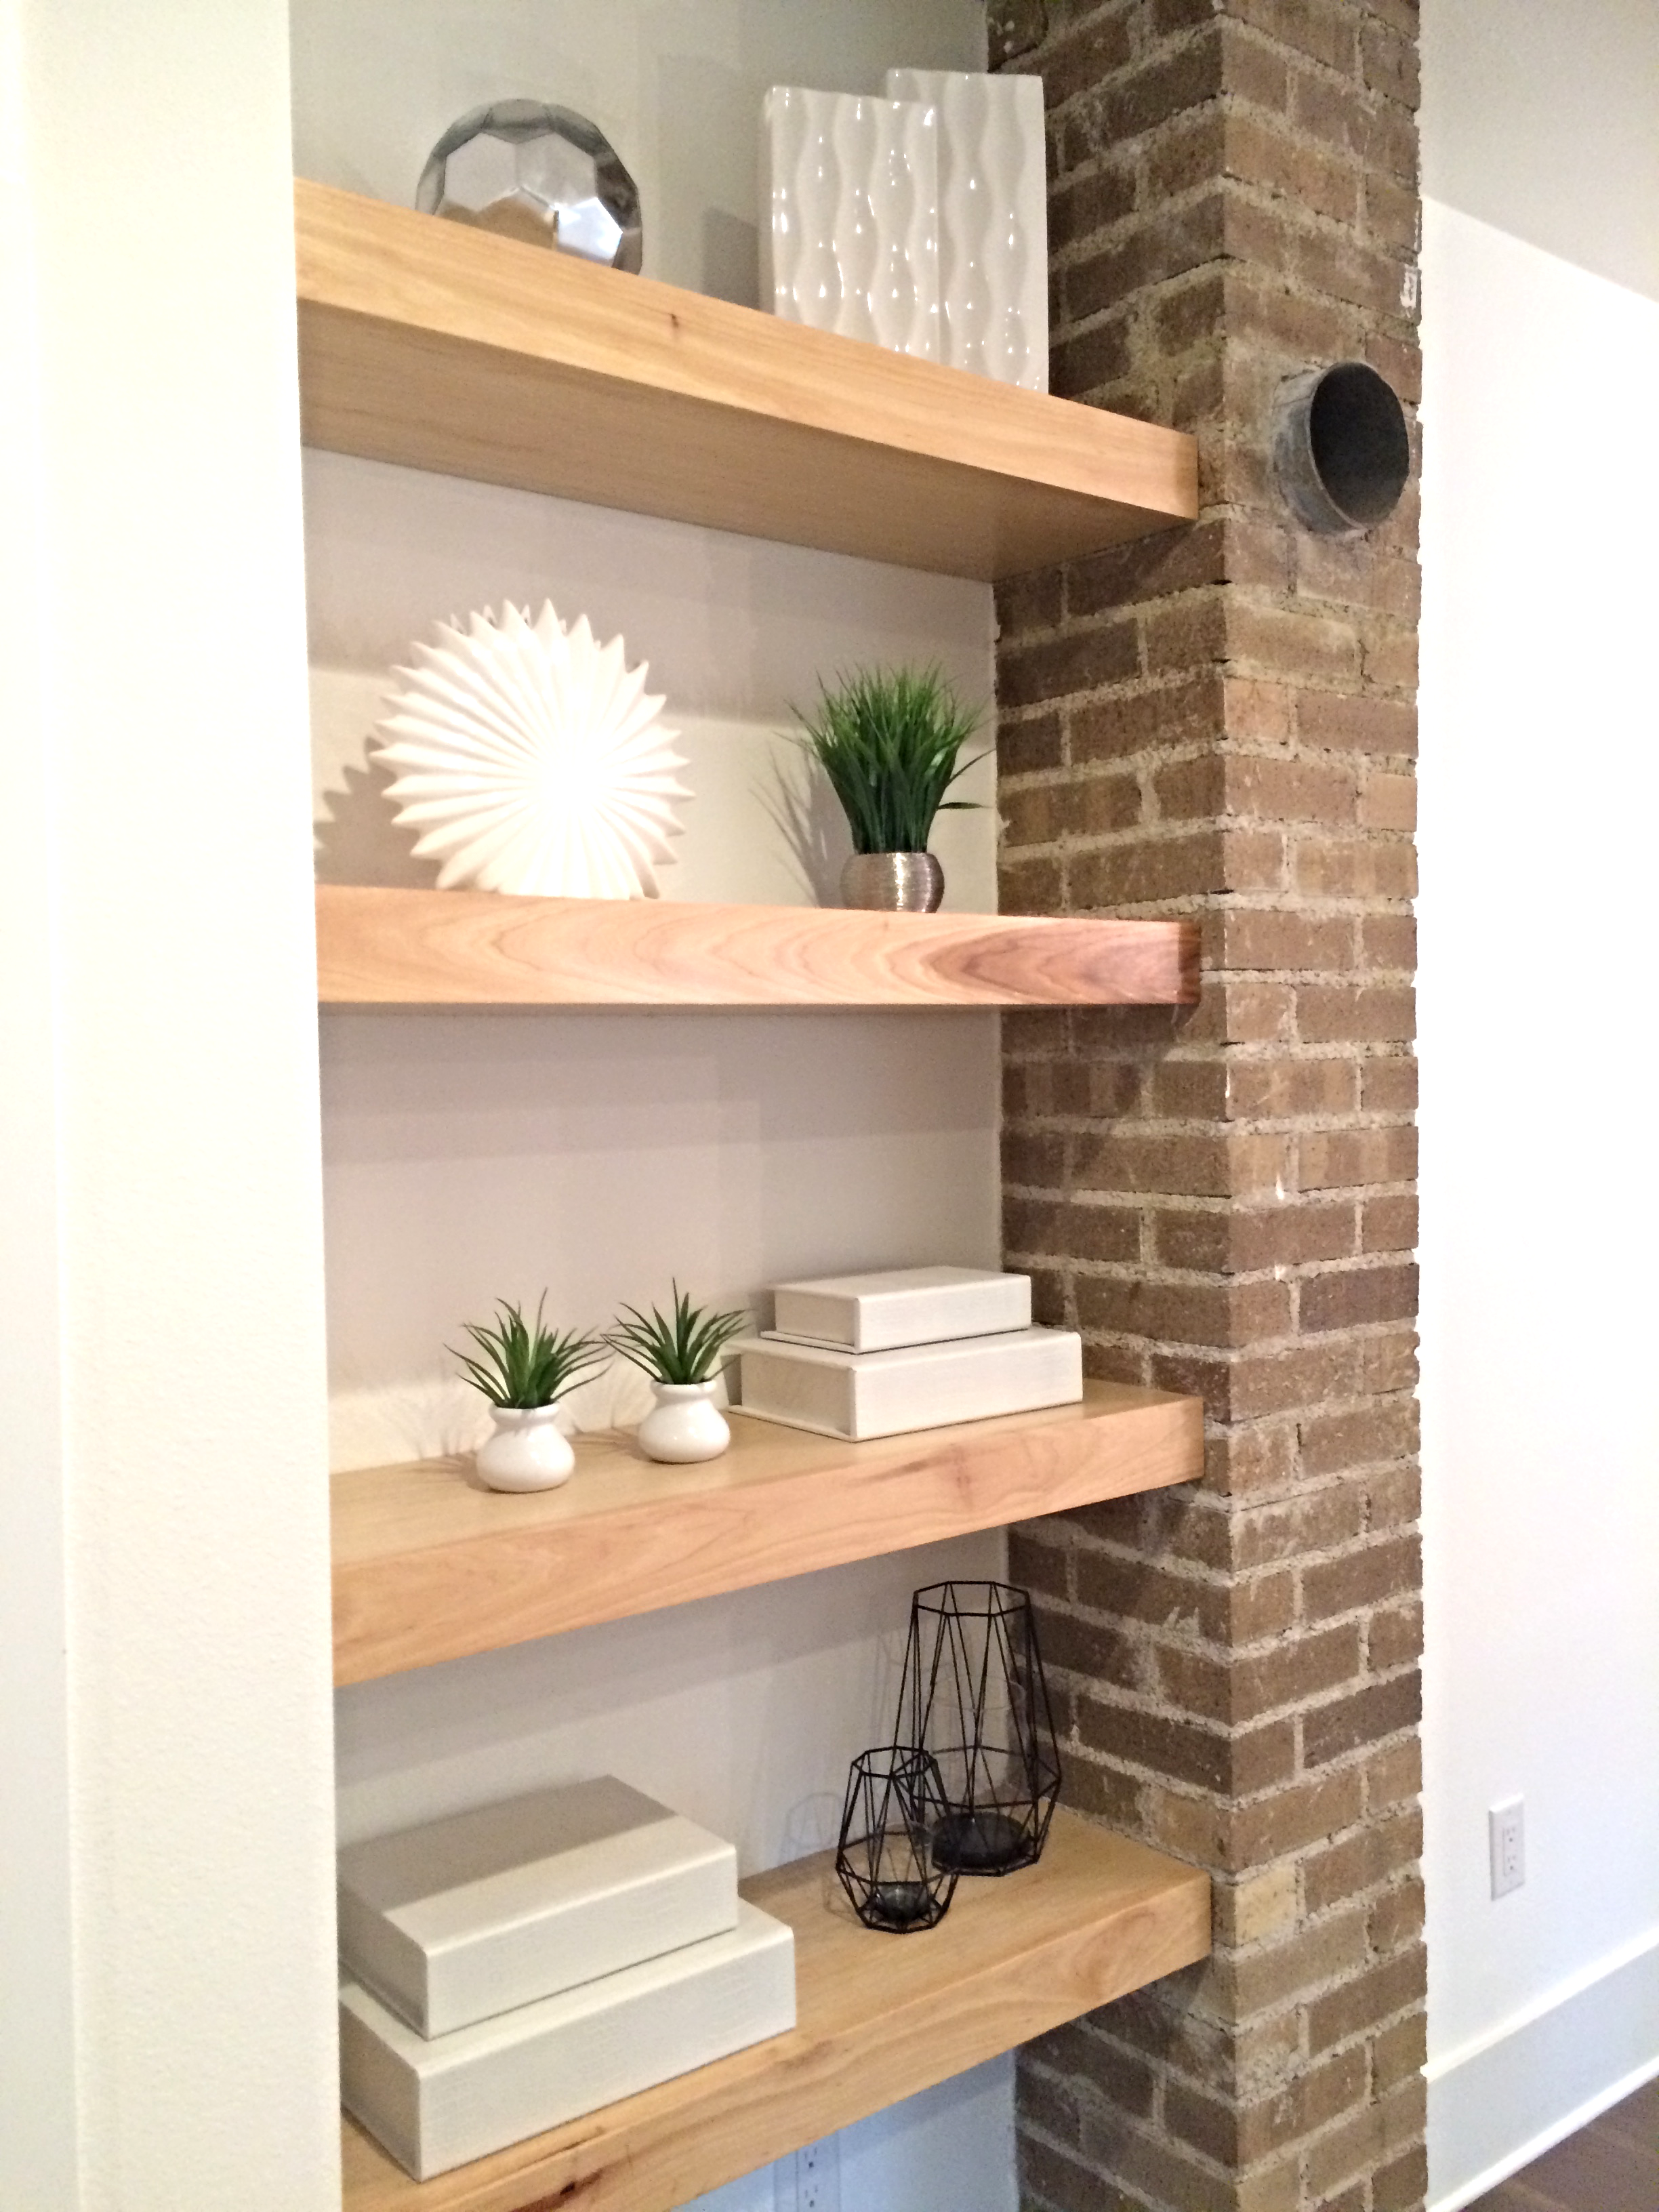 New local hardwood Pecan floating shelves next to old 1930s brick chimney original to the bungalow!